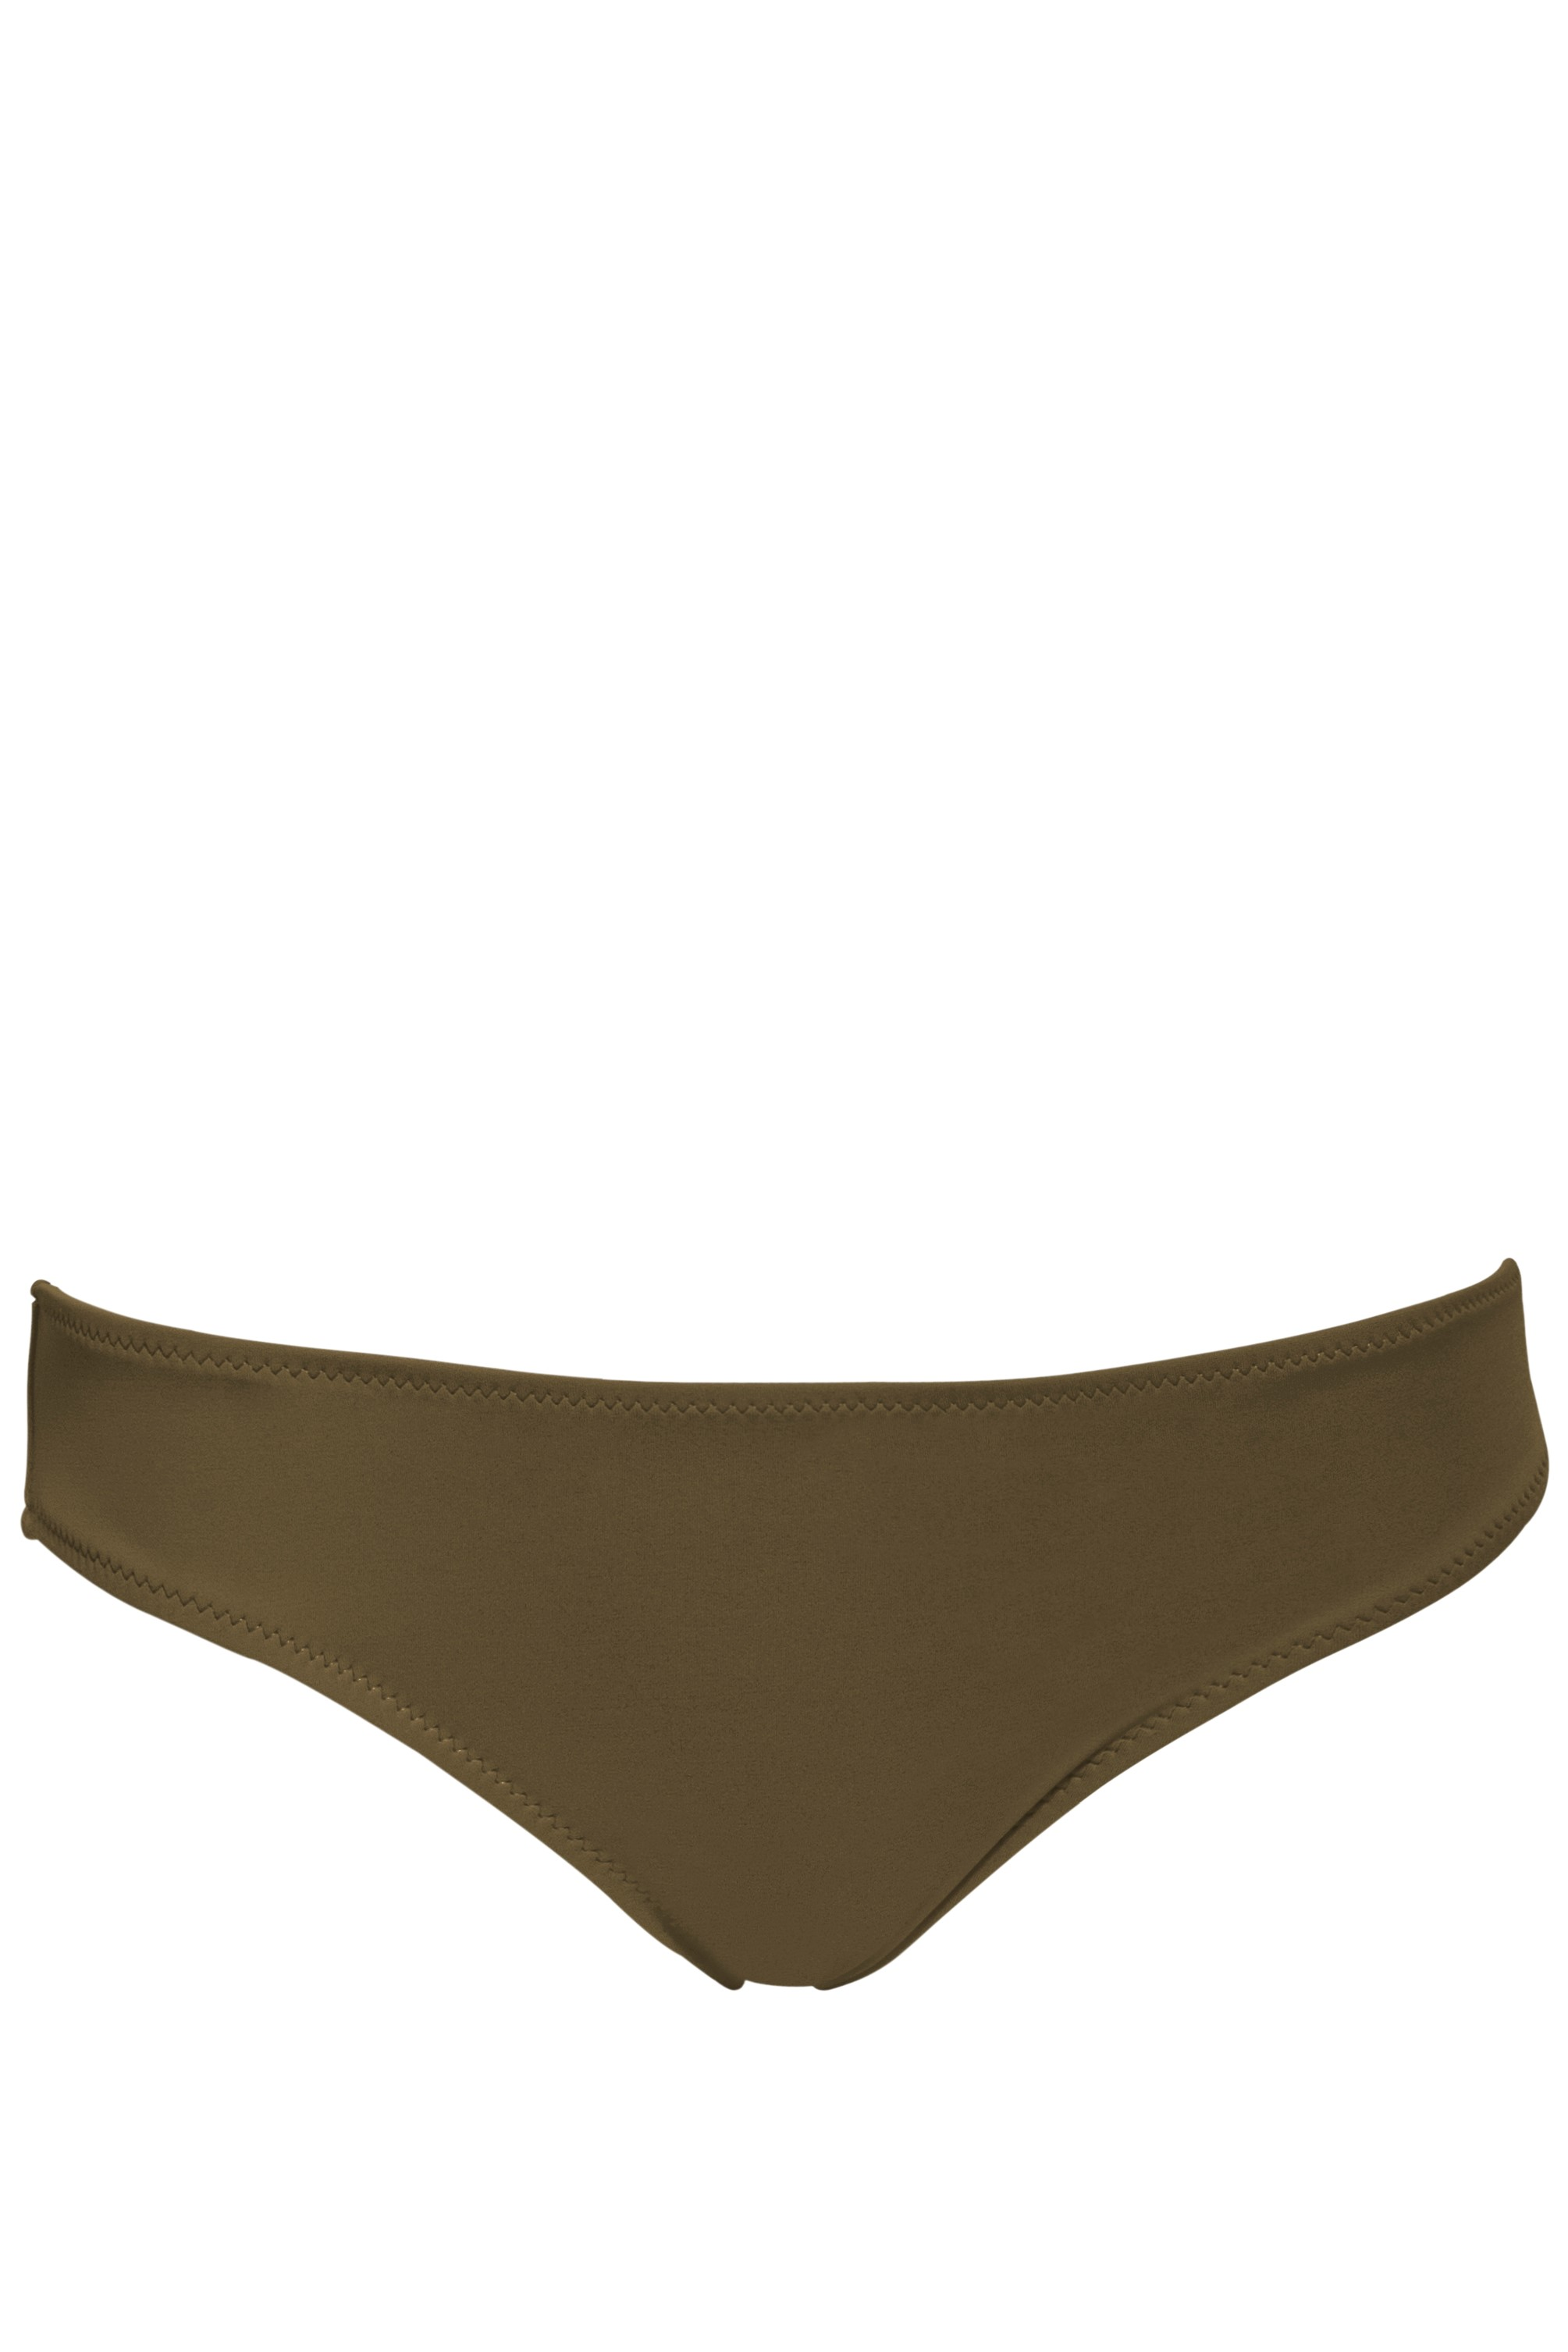 Phax Color Mix Full Bikini Bottom Khaki Green-medium-Khaki